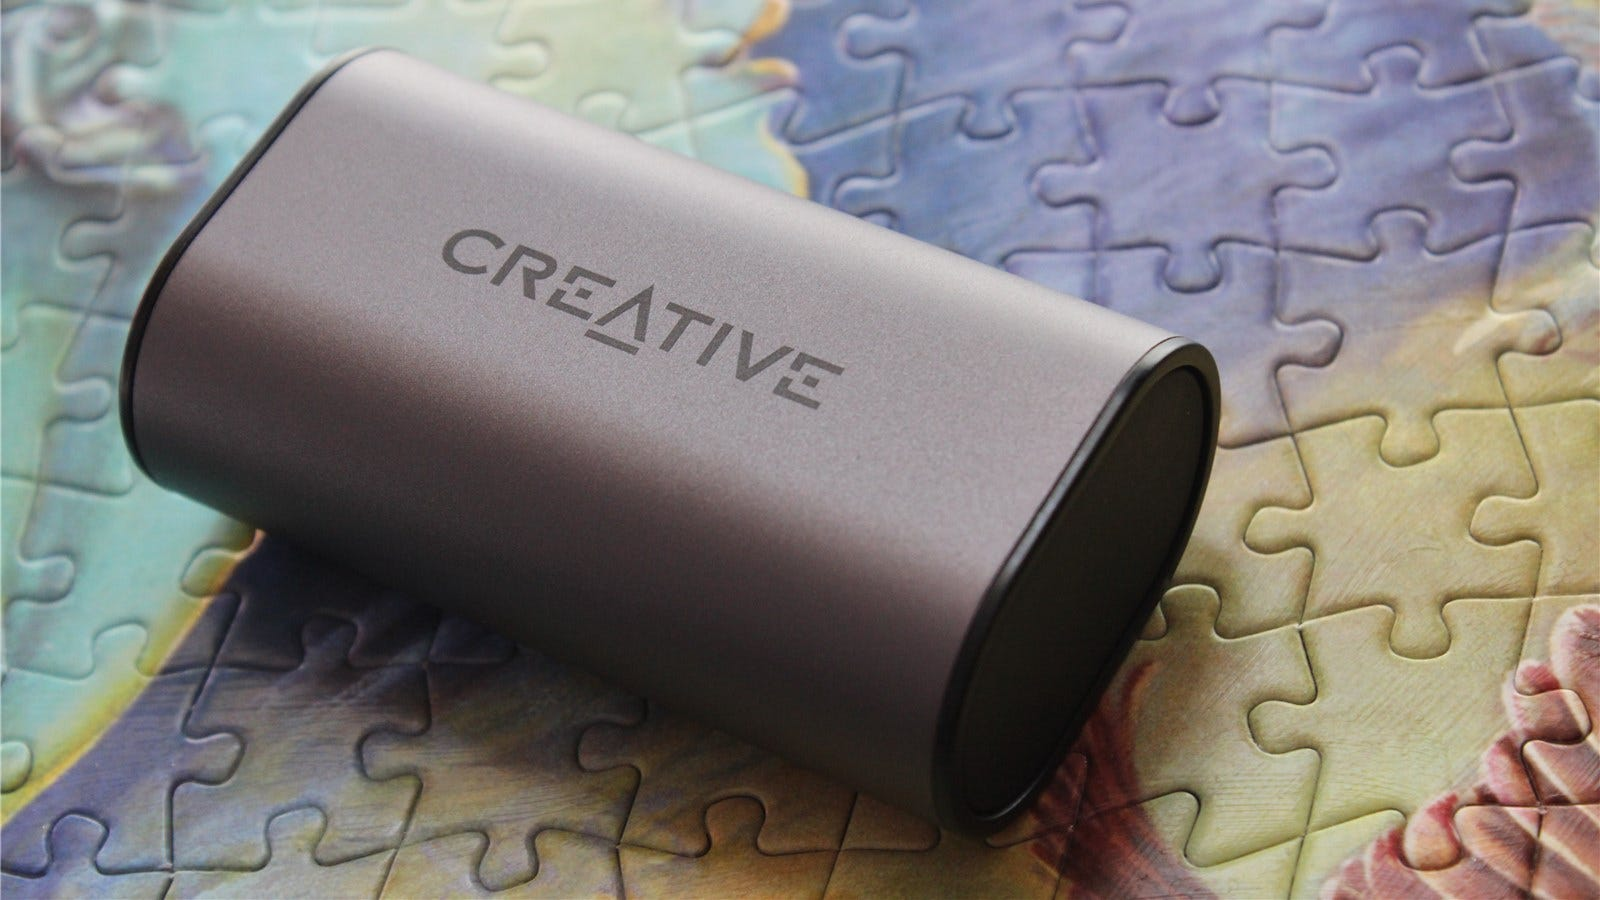 Creative Outlier Air case